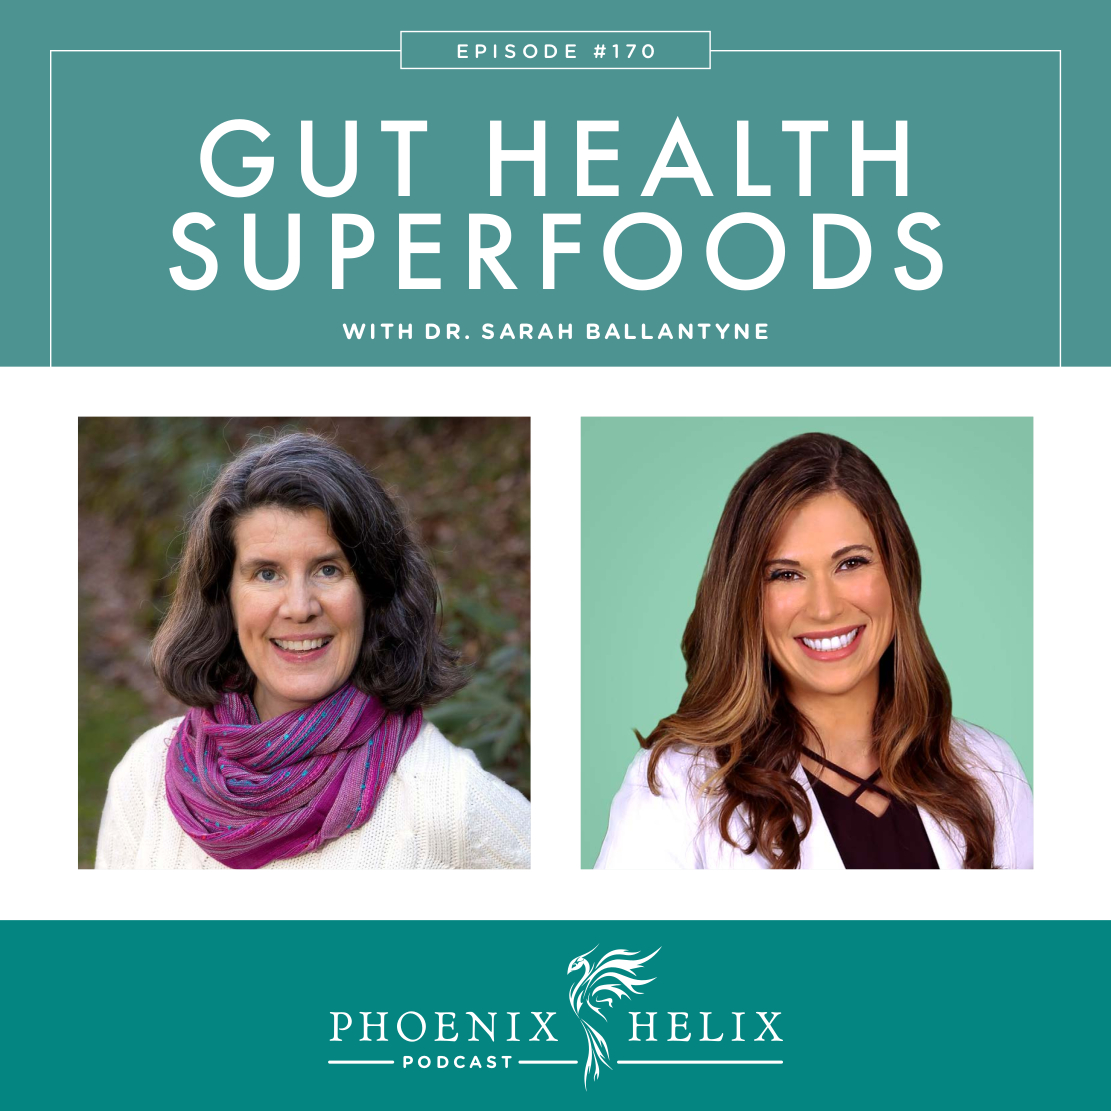 Gut Health Superfoods with Dr. Sarah Ballantyne | Phoenix Helix Podcast